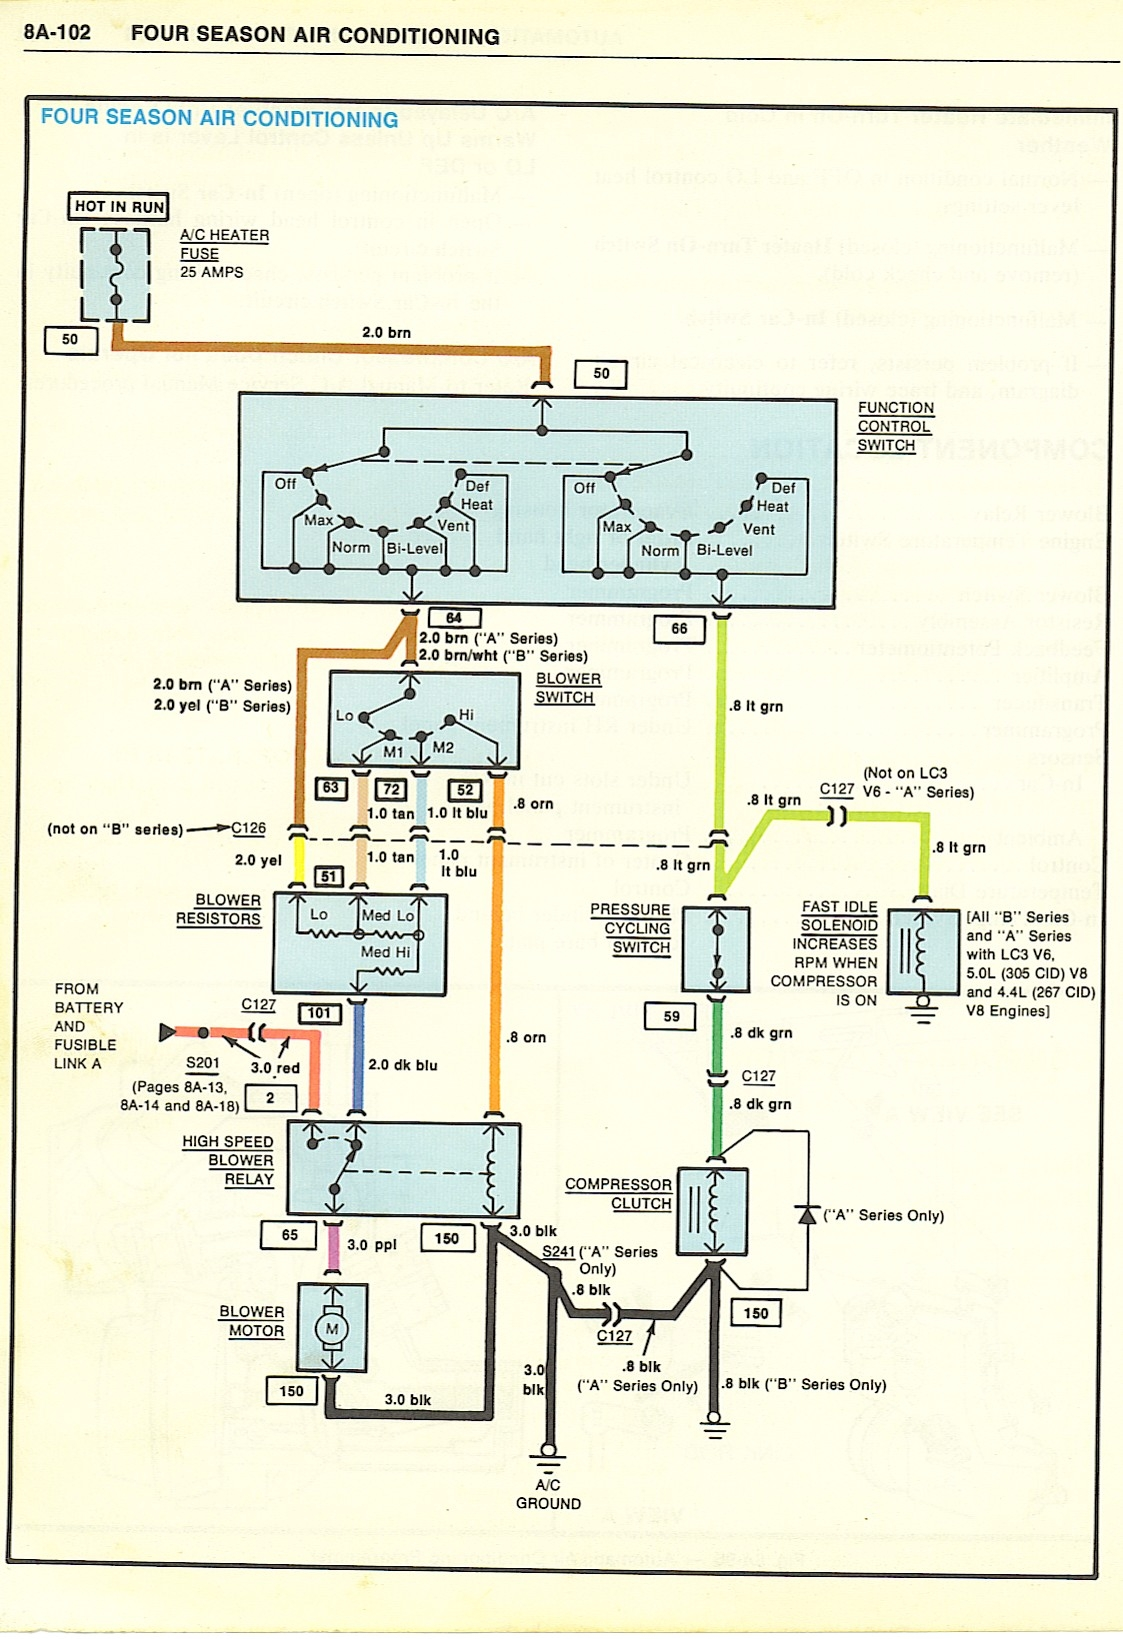 hight resolution of 1970 chevelle heater ac wiring diagram wiring library 1970 chevelle heater ac wiring diagram